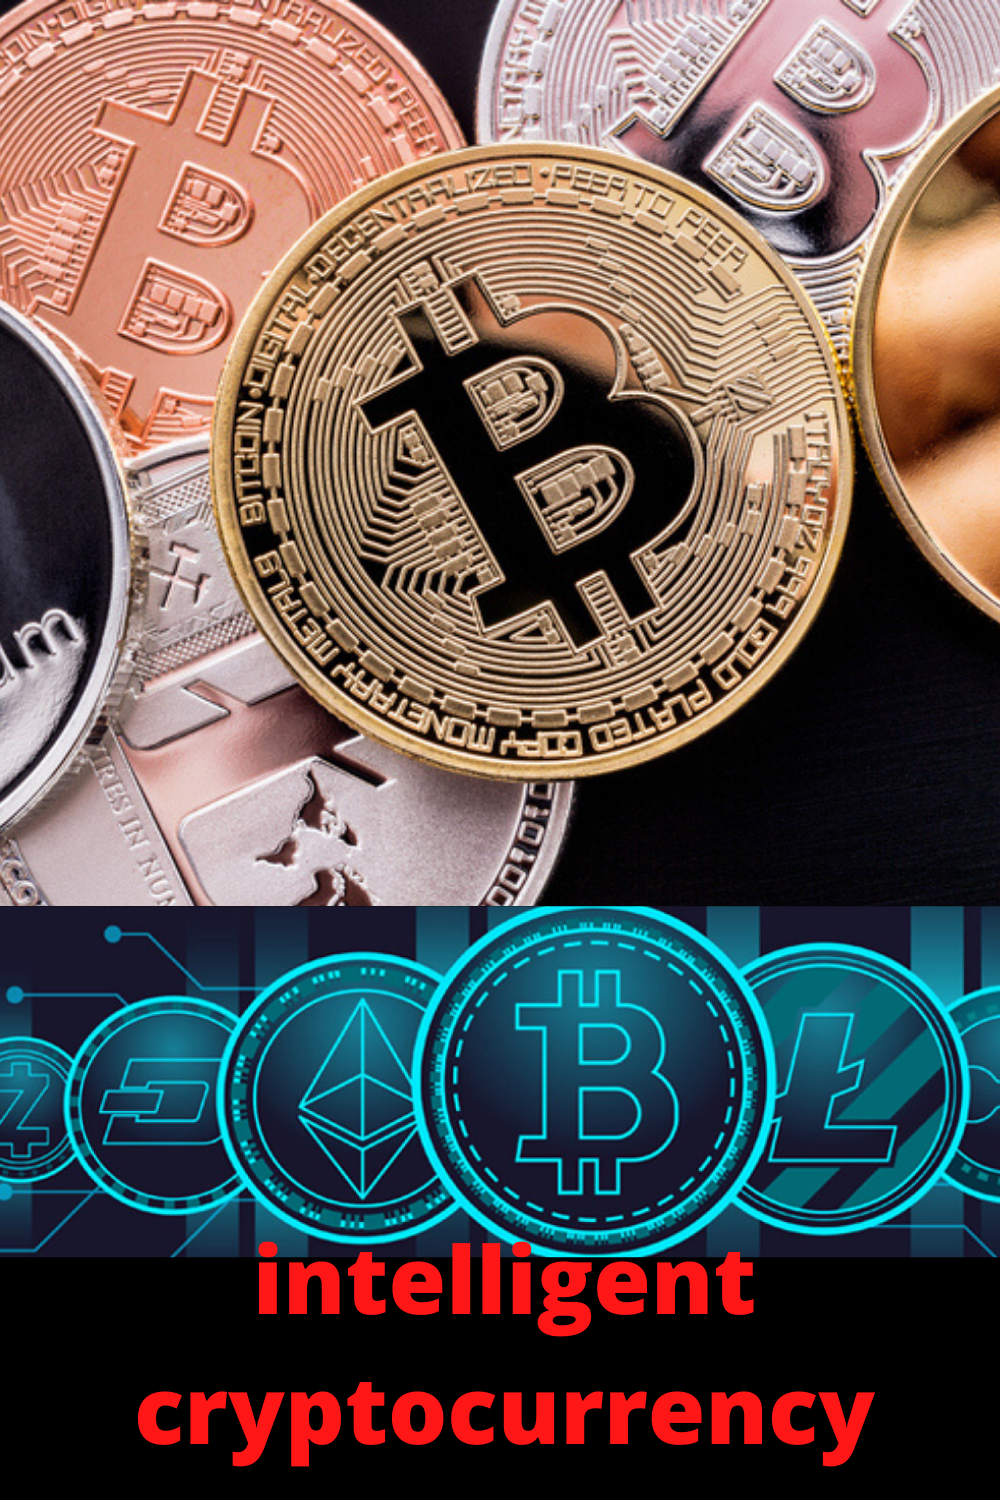 Cryptocurrency newsletter why legalizing sports betting is good for the ncaa